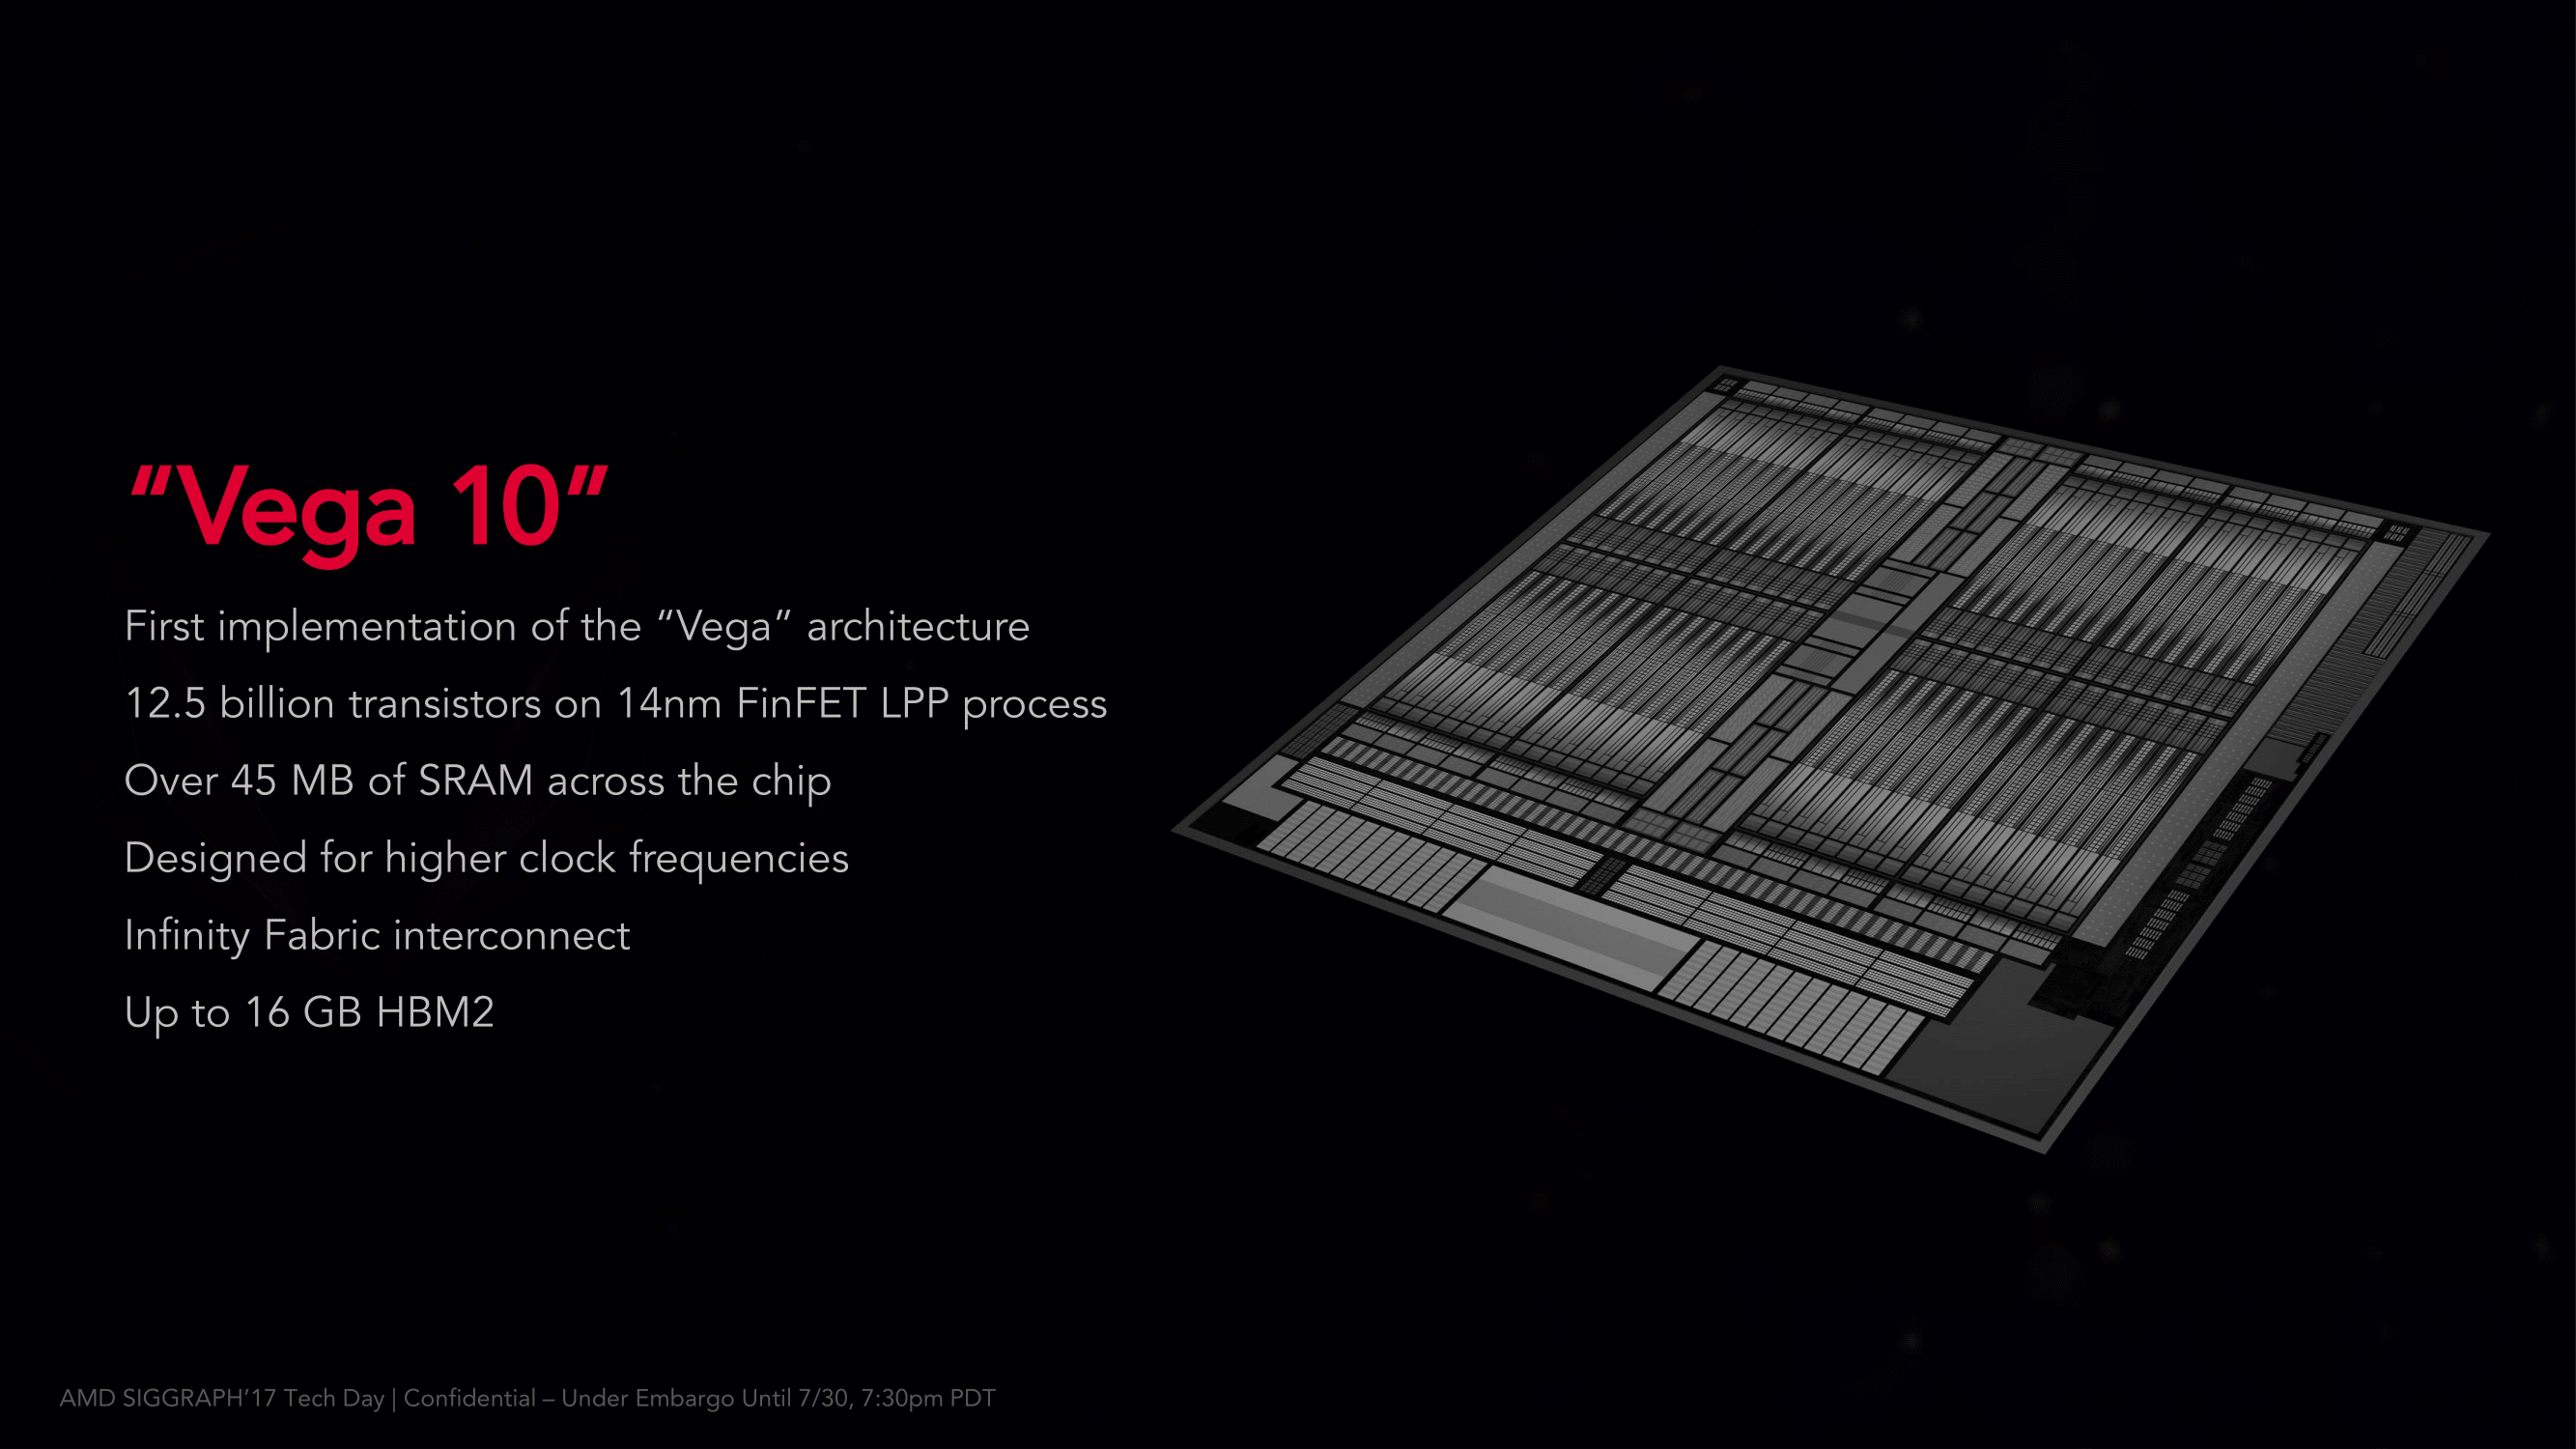 Phoenix Wallpaper Iphone Amd Radeon Rx Vega Now Official 499 For The Vega 64 And